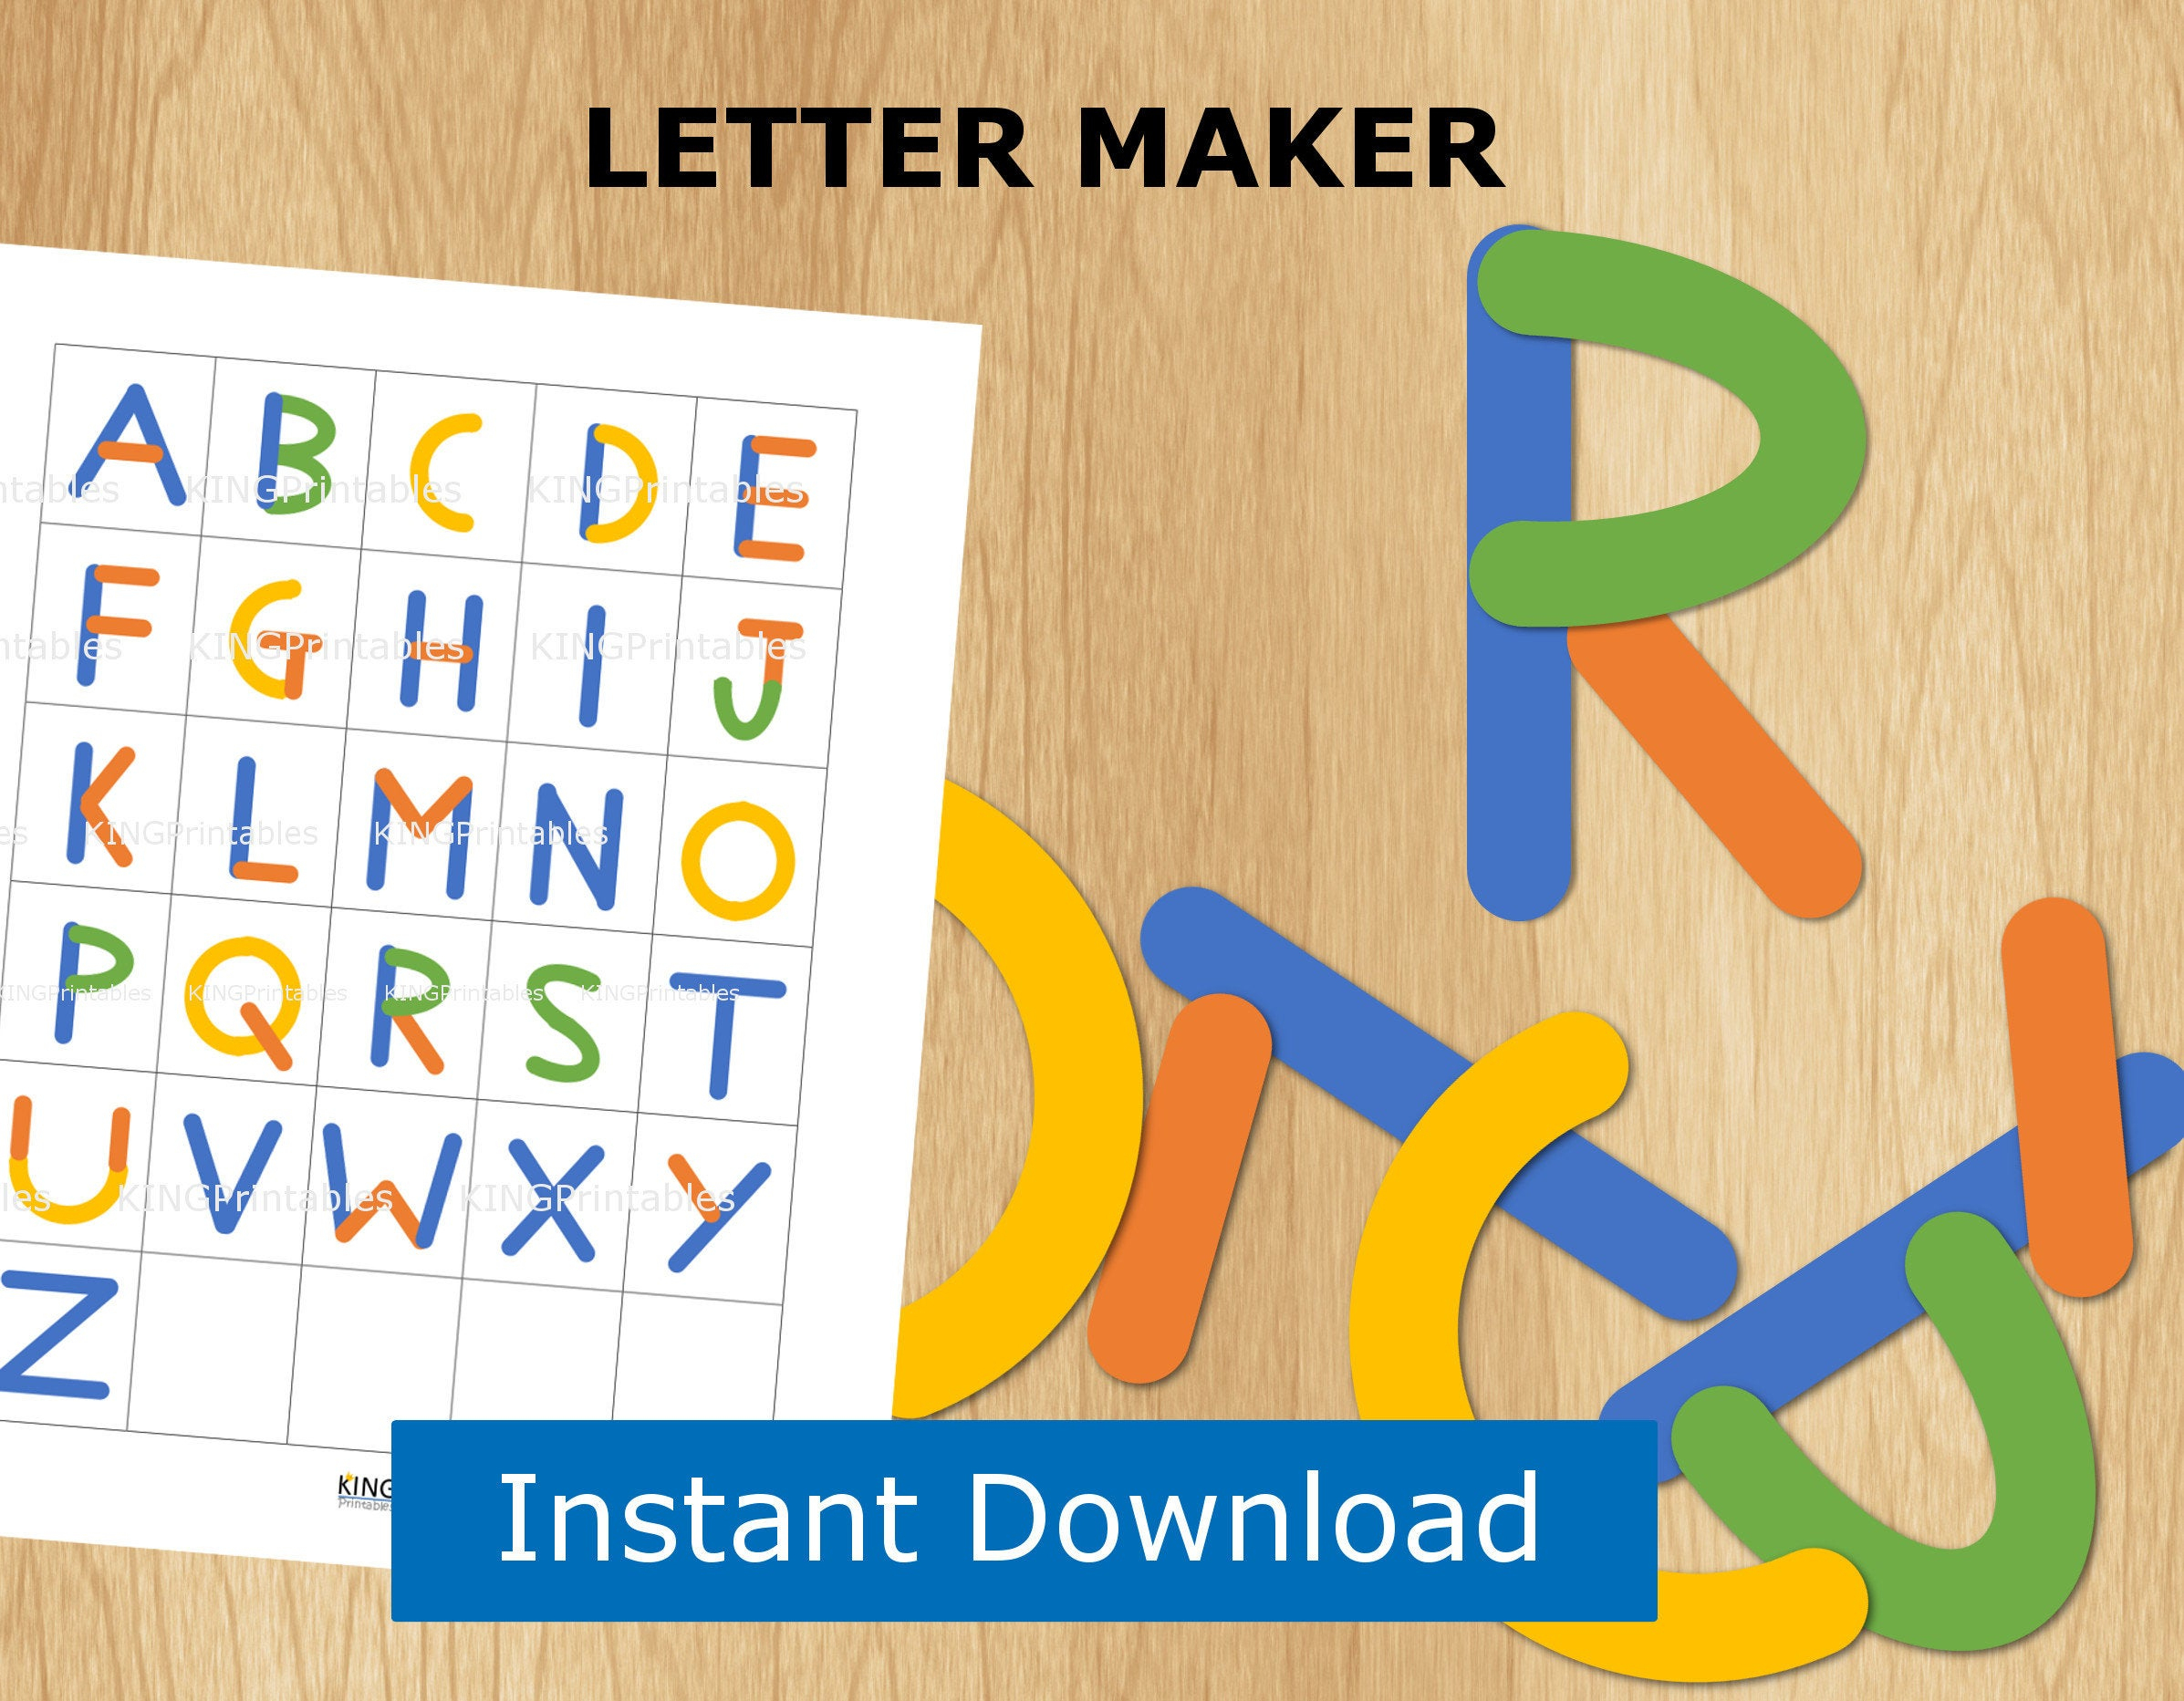 Abc Puzzle Preschool Printable Alphabet Letter Builder File | Etsy - Printable Abc Puzzle